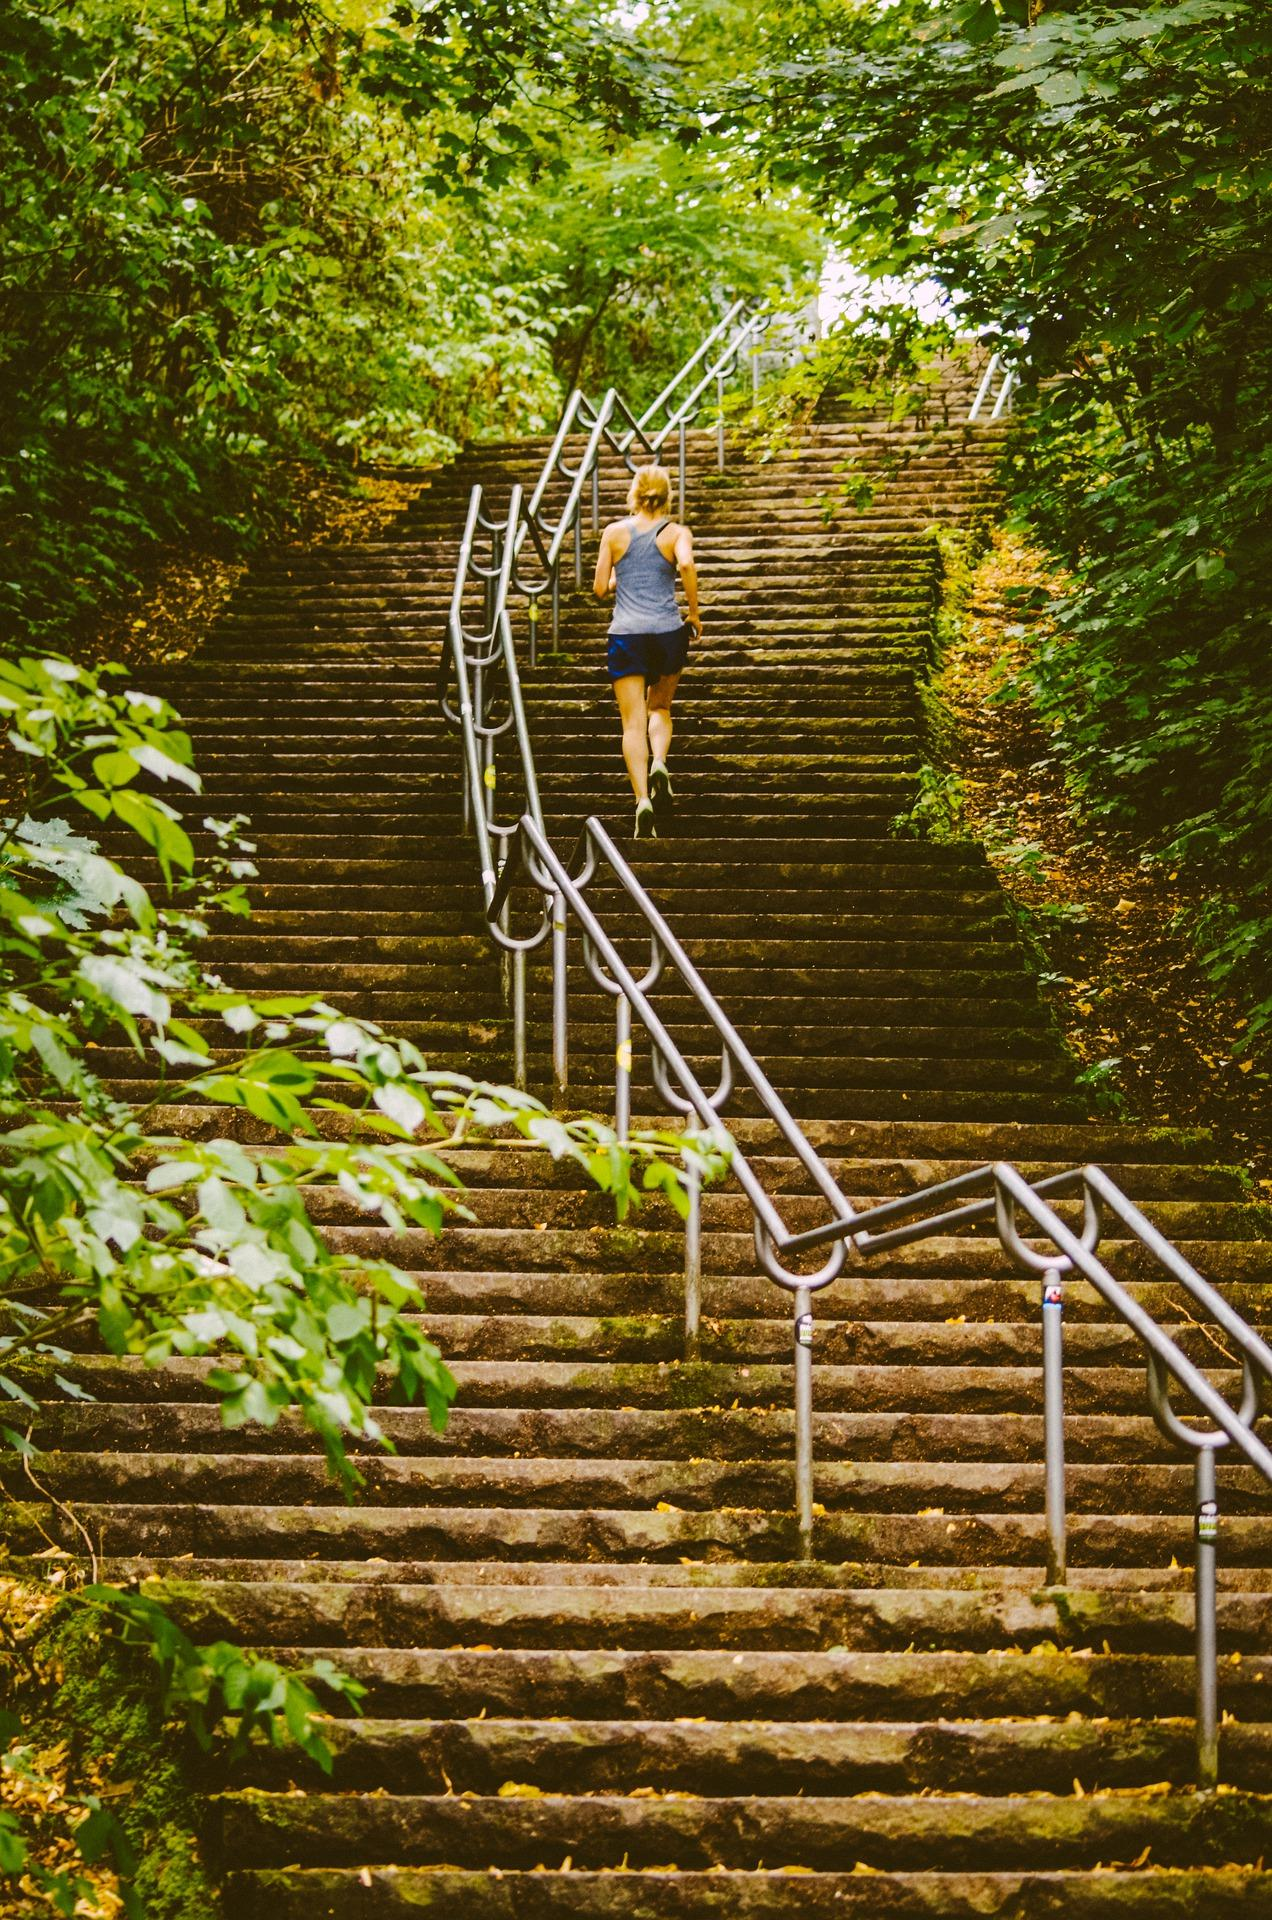 Stairs 4352989 1920